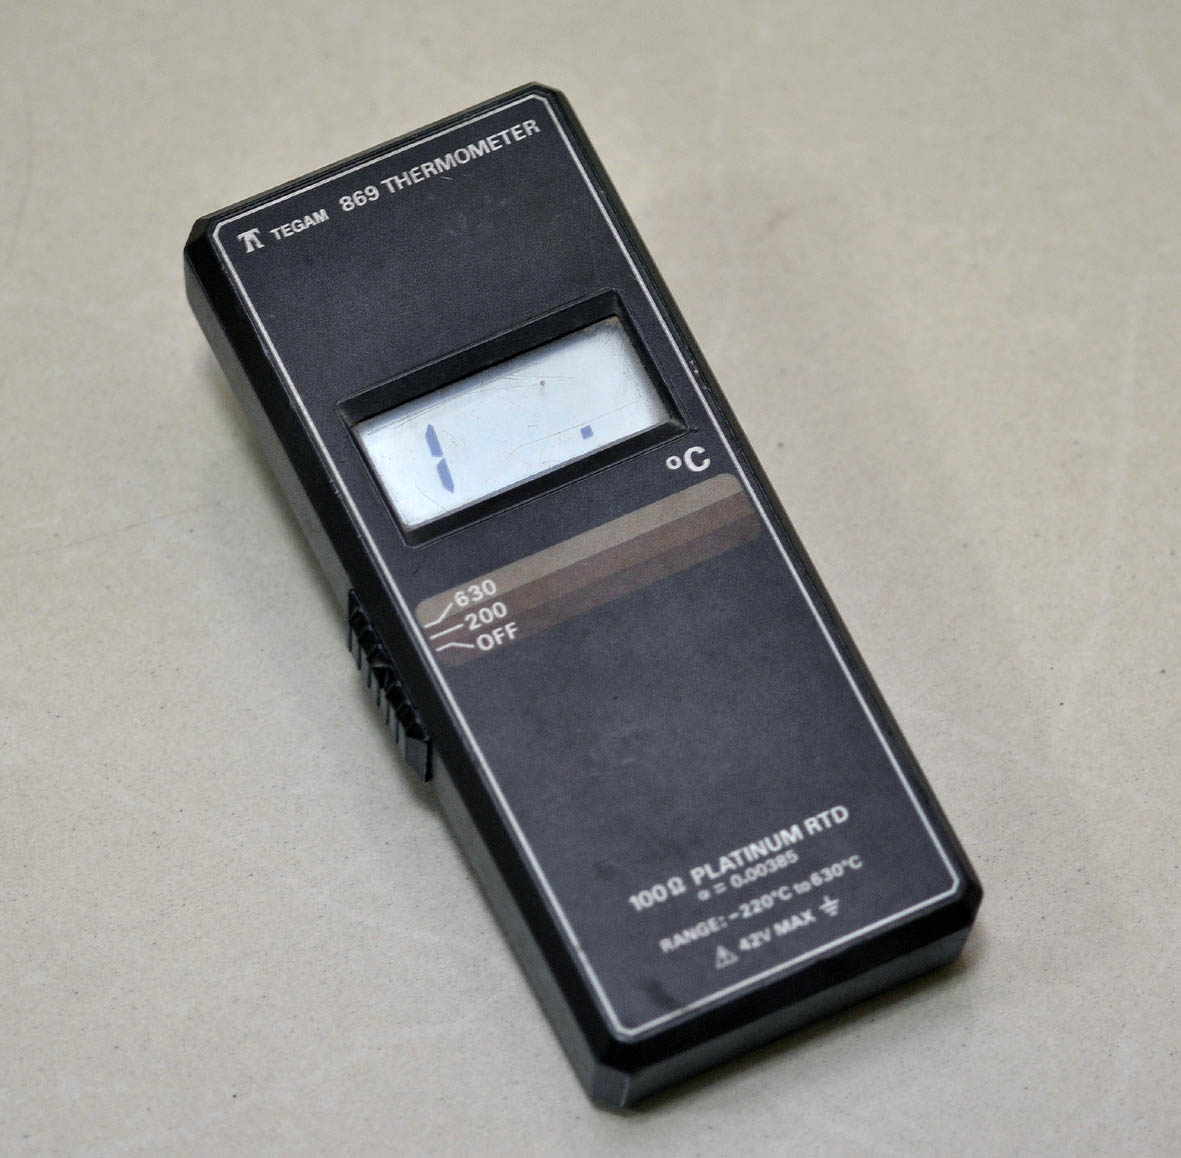 RTD digital thermometer